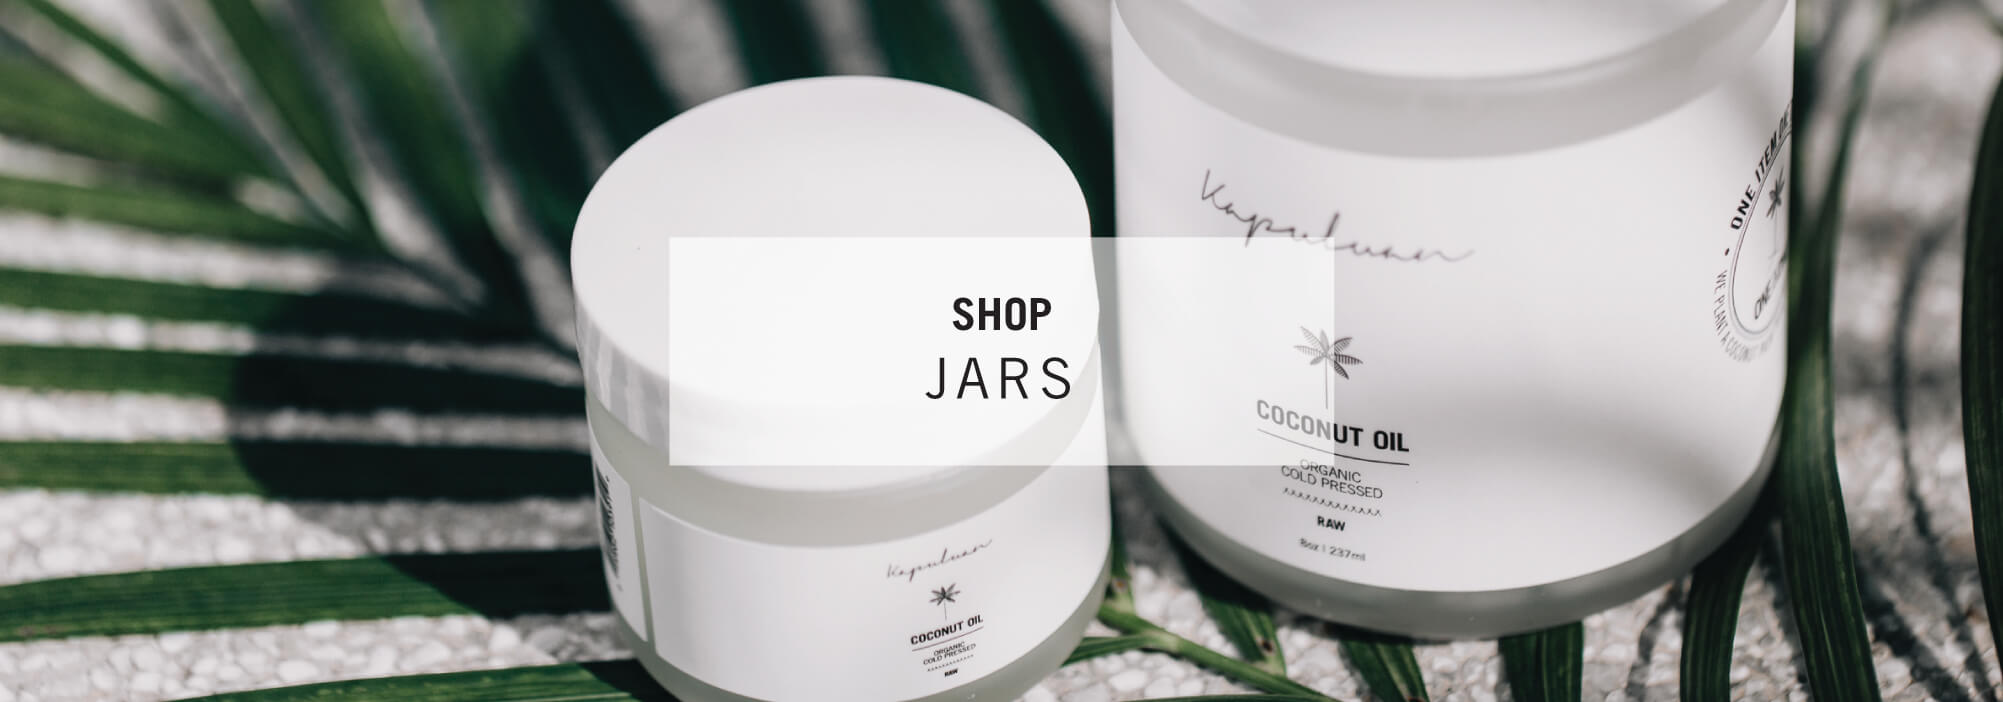 kapuluan coconut oil shop jars